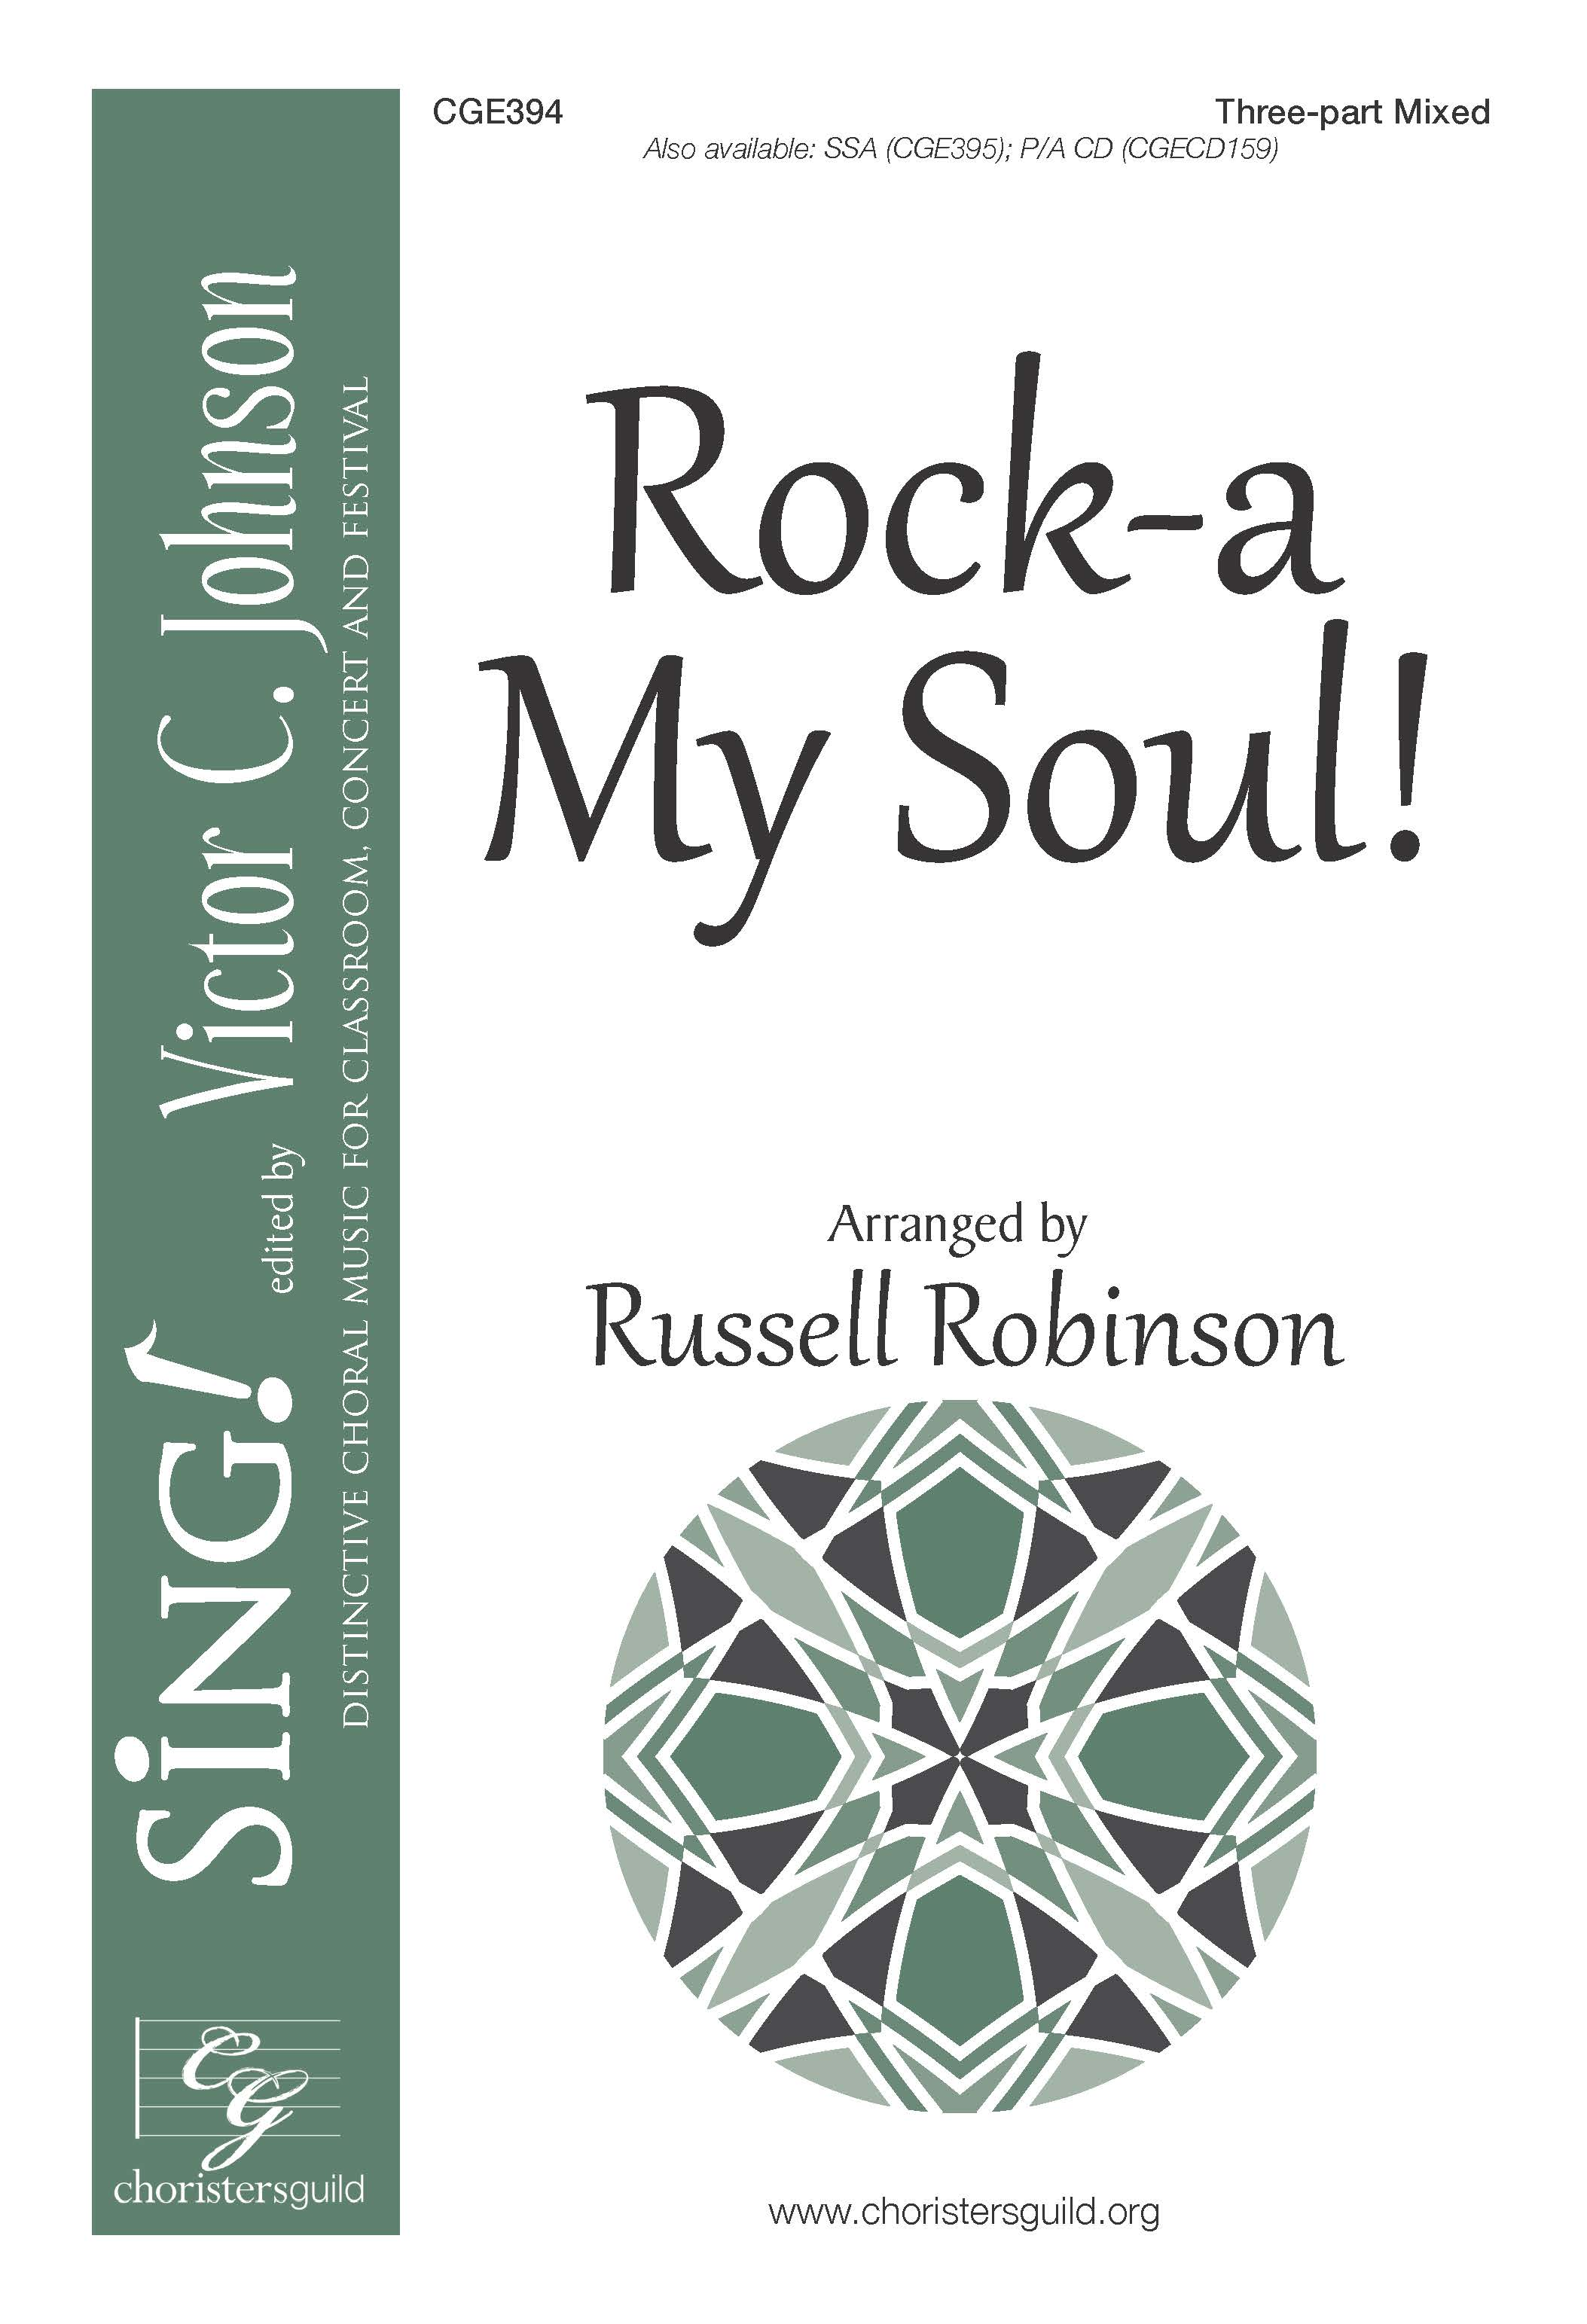 Rock-a My Soul! - Three-part Mixed with Descant